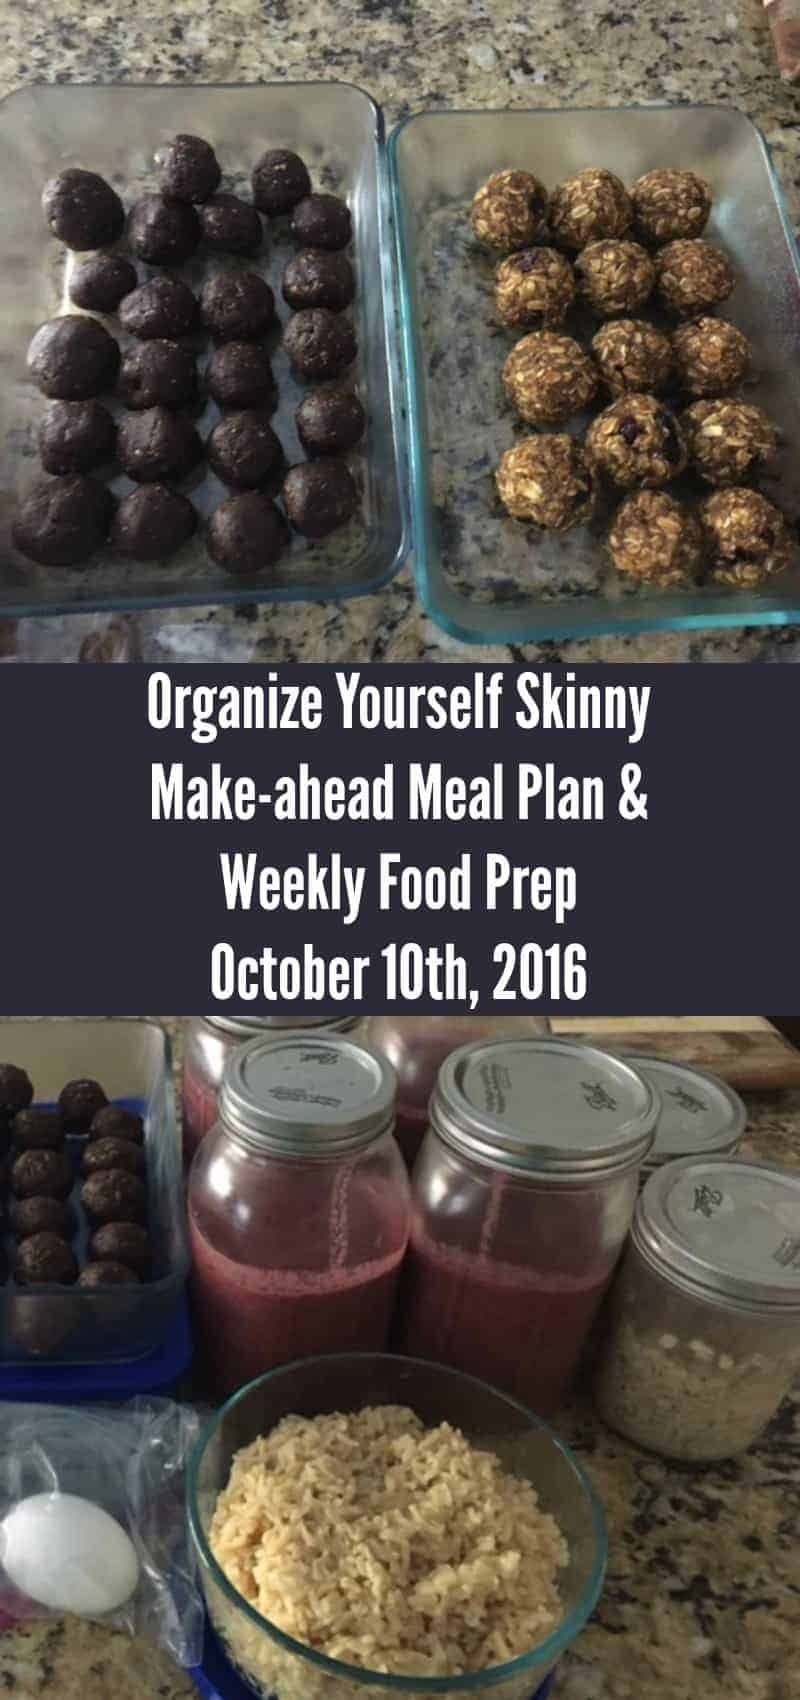 Make-ahead Meal Plan weekly Food Prep October 10th 2016